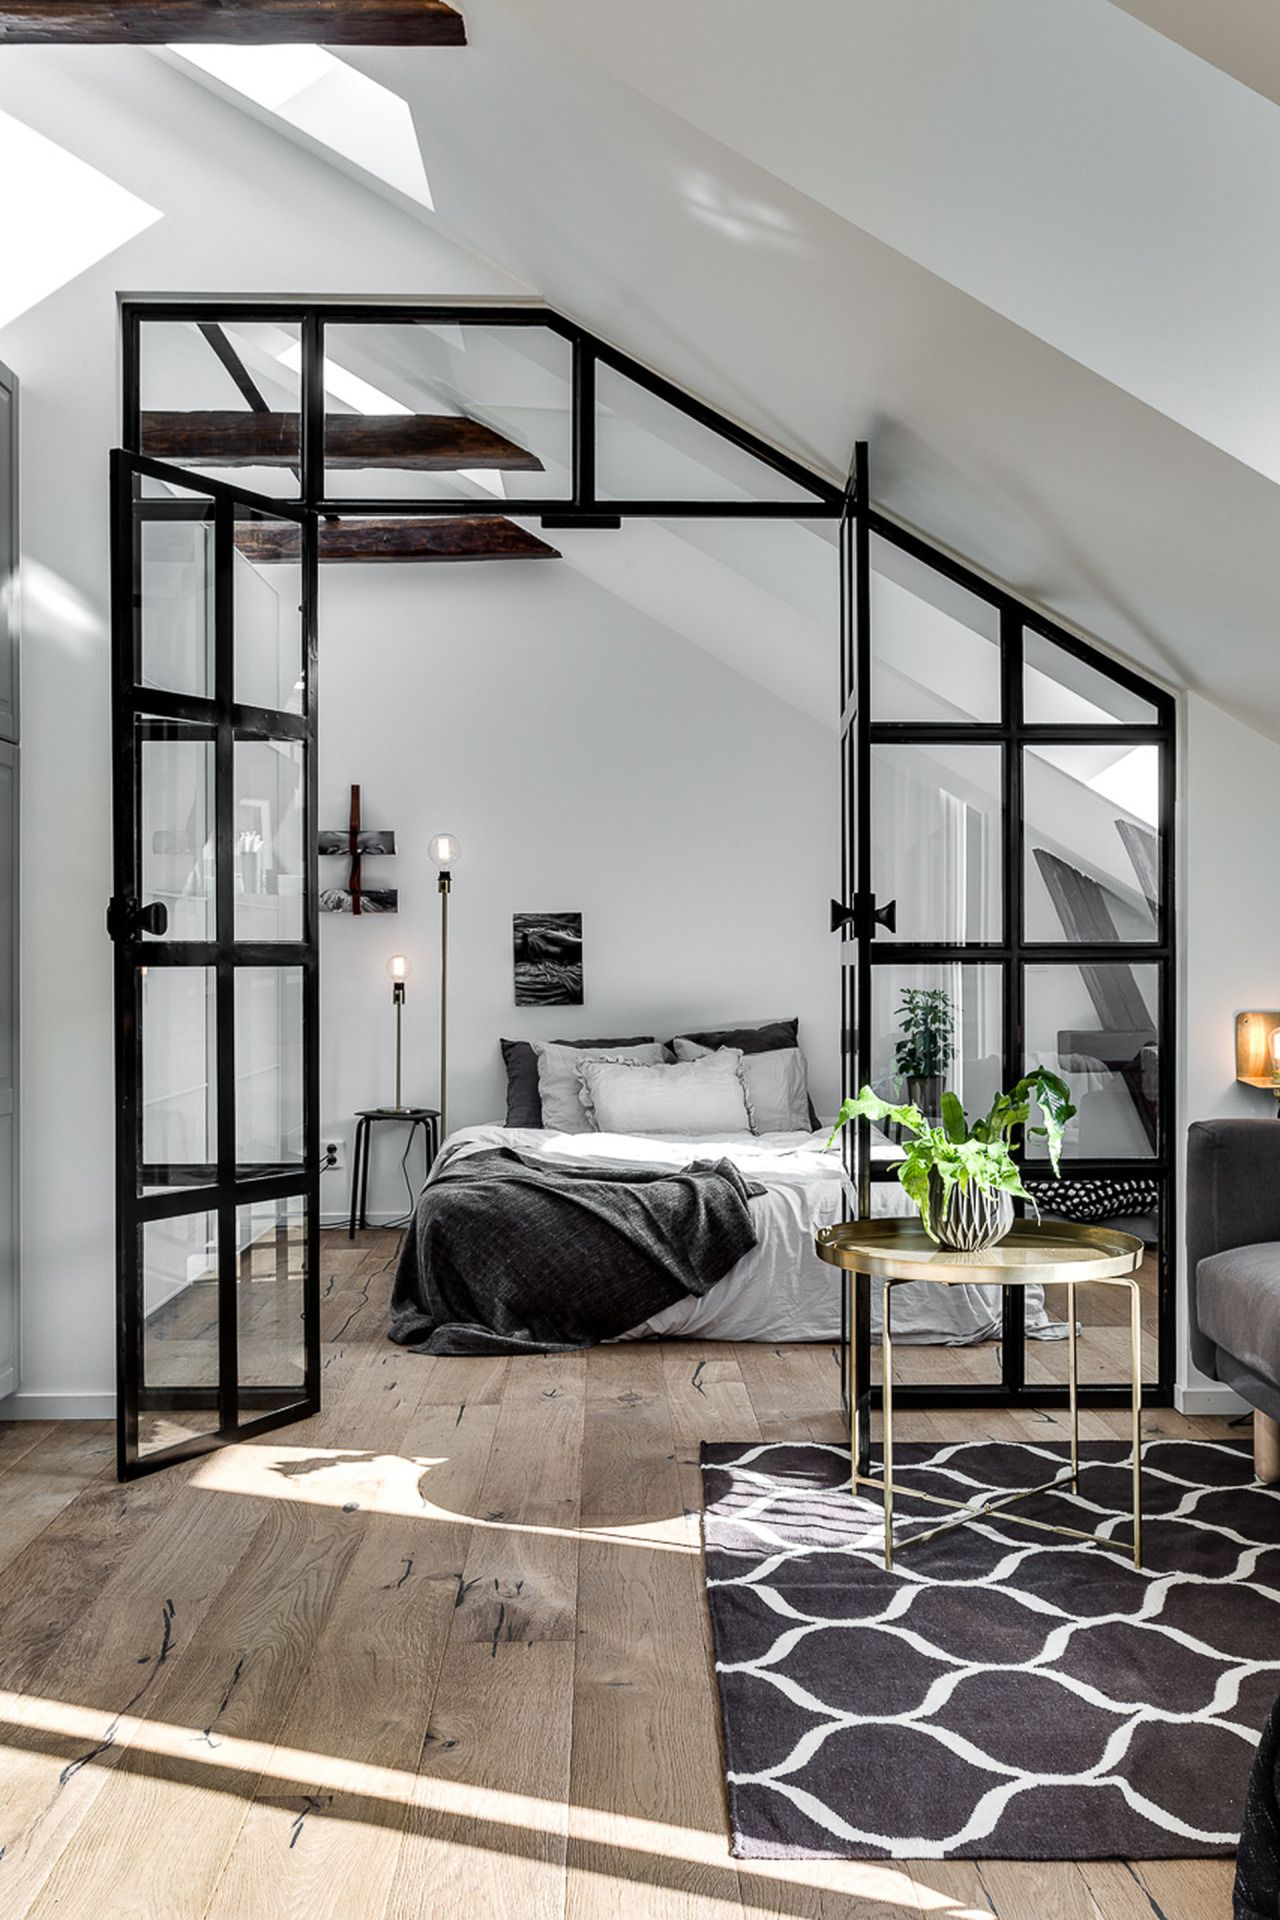 Attic Apartment With Industrial Glass Wall Follow Gravity Home Blog Instagram Pinterest Faceb Slaapkamer Interieur Interieur Slaapkamer Slaapkamerideeen